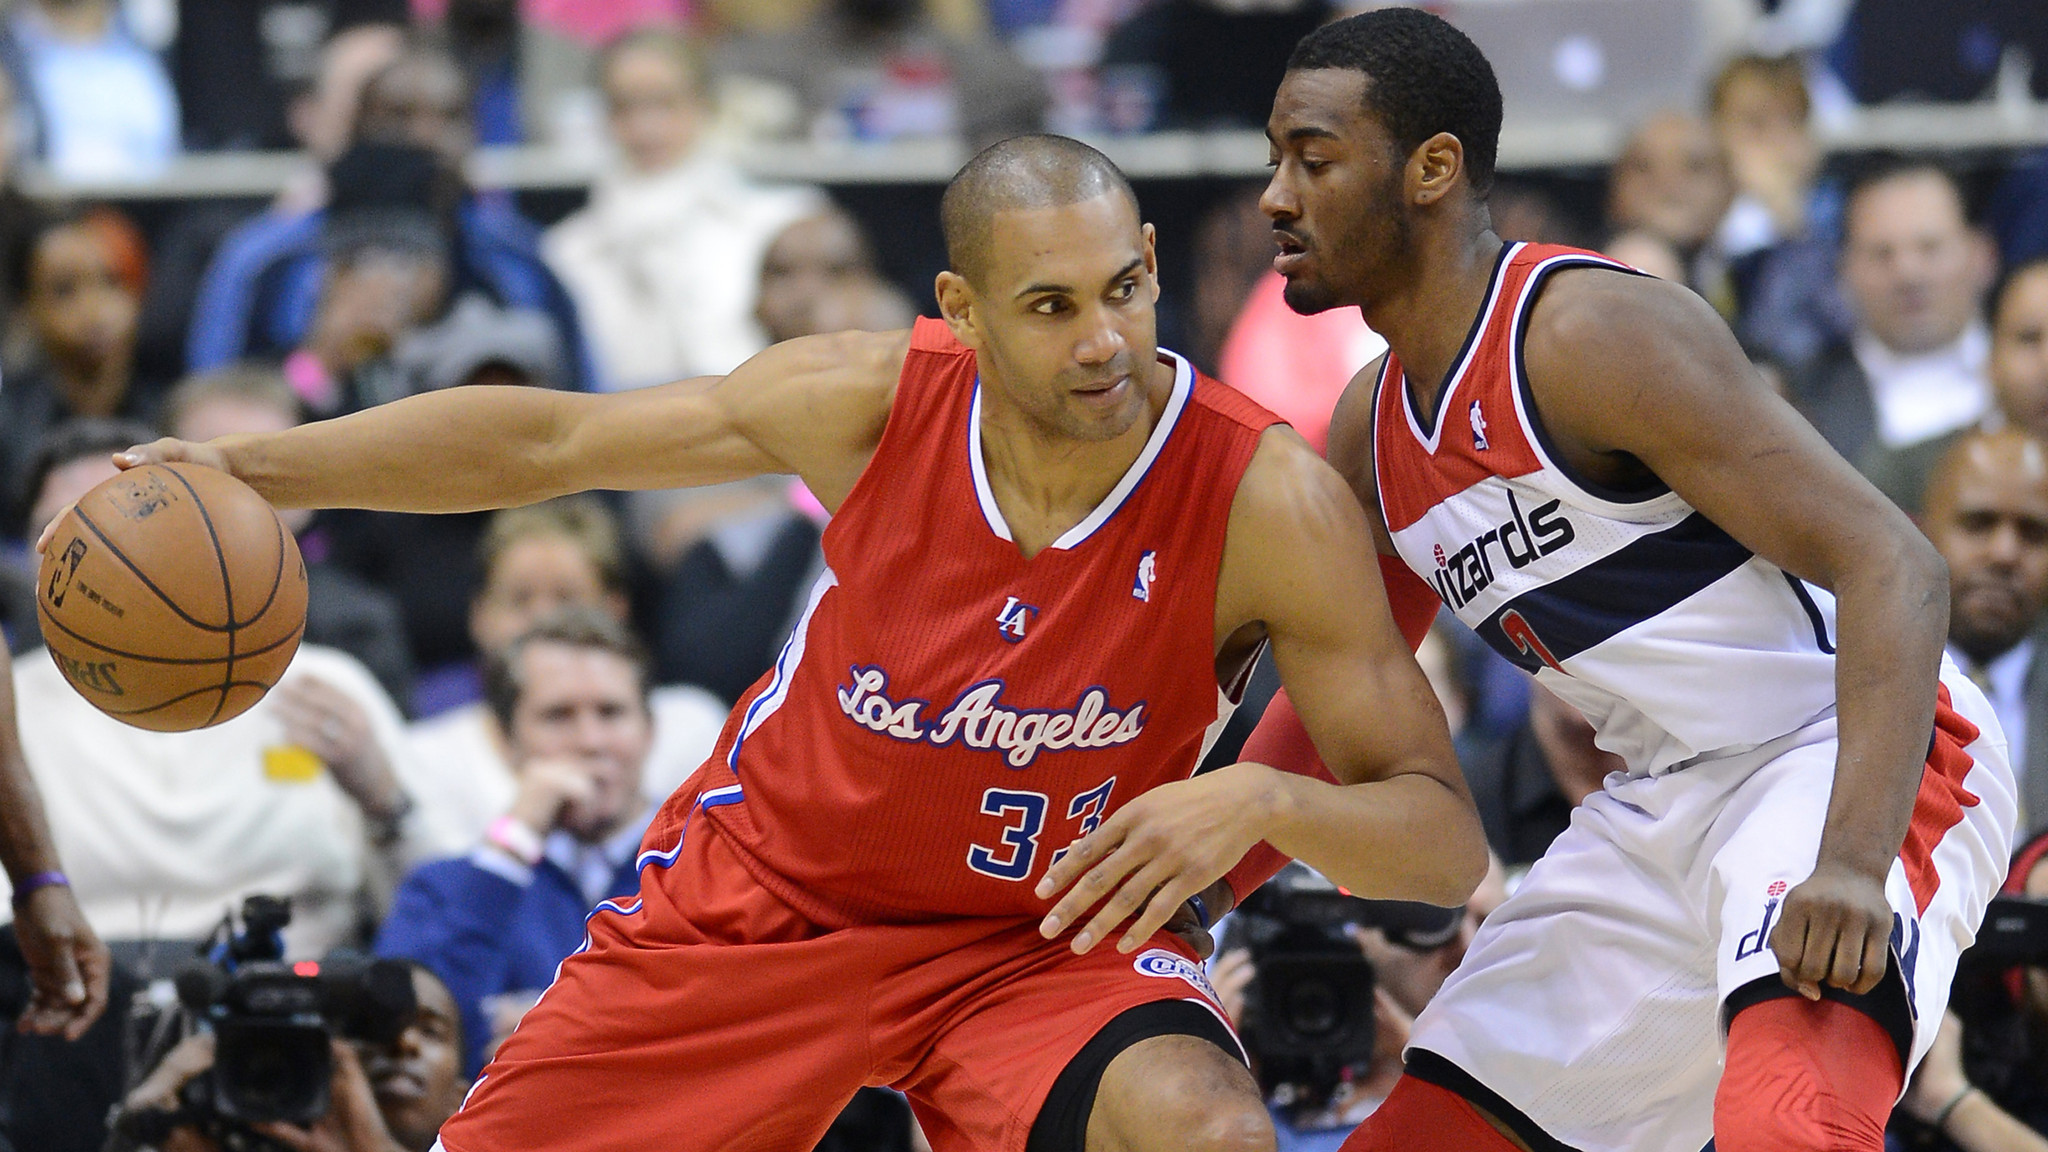 Grant Hill says 2003 staph infection put him close to checking